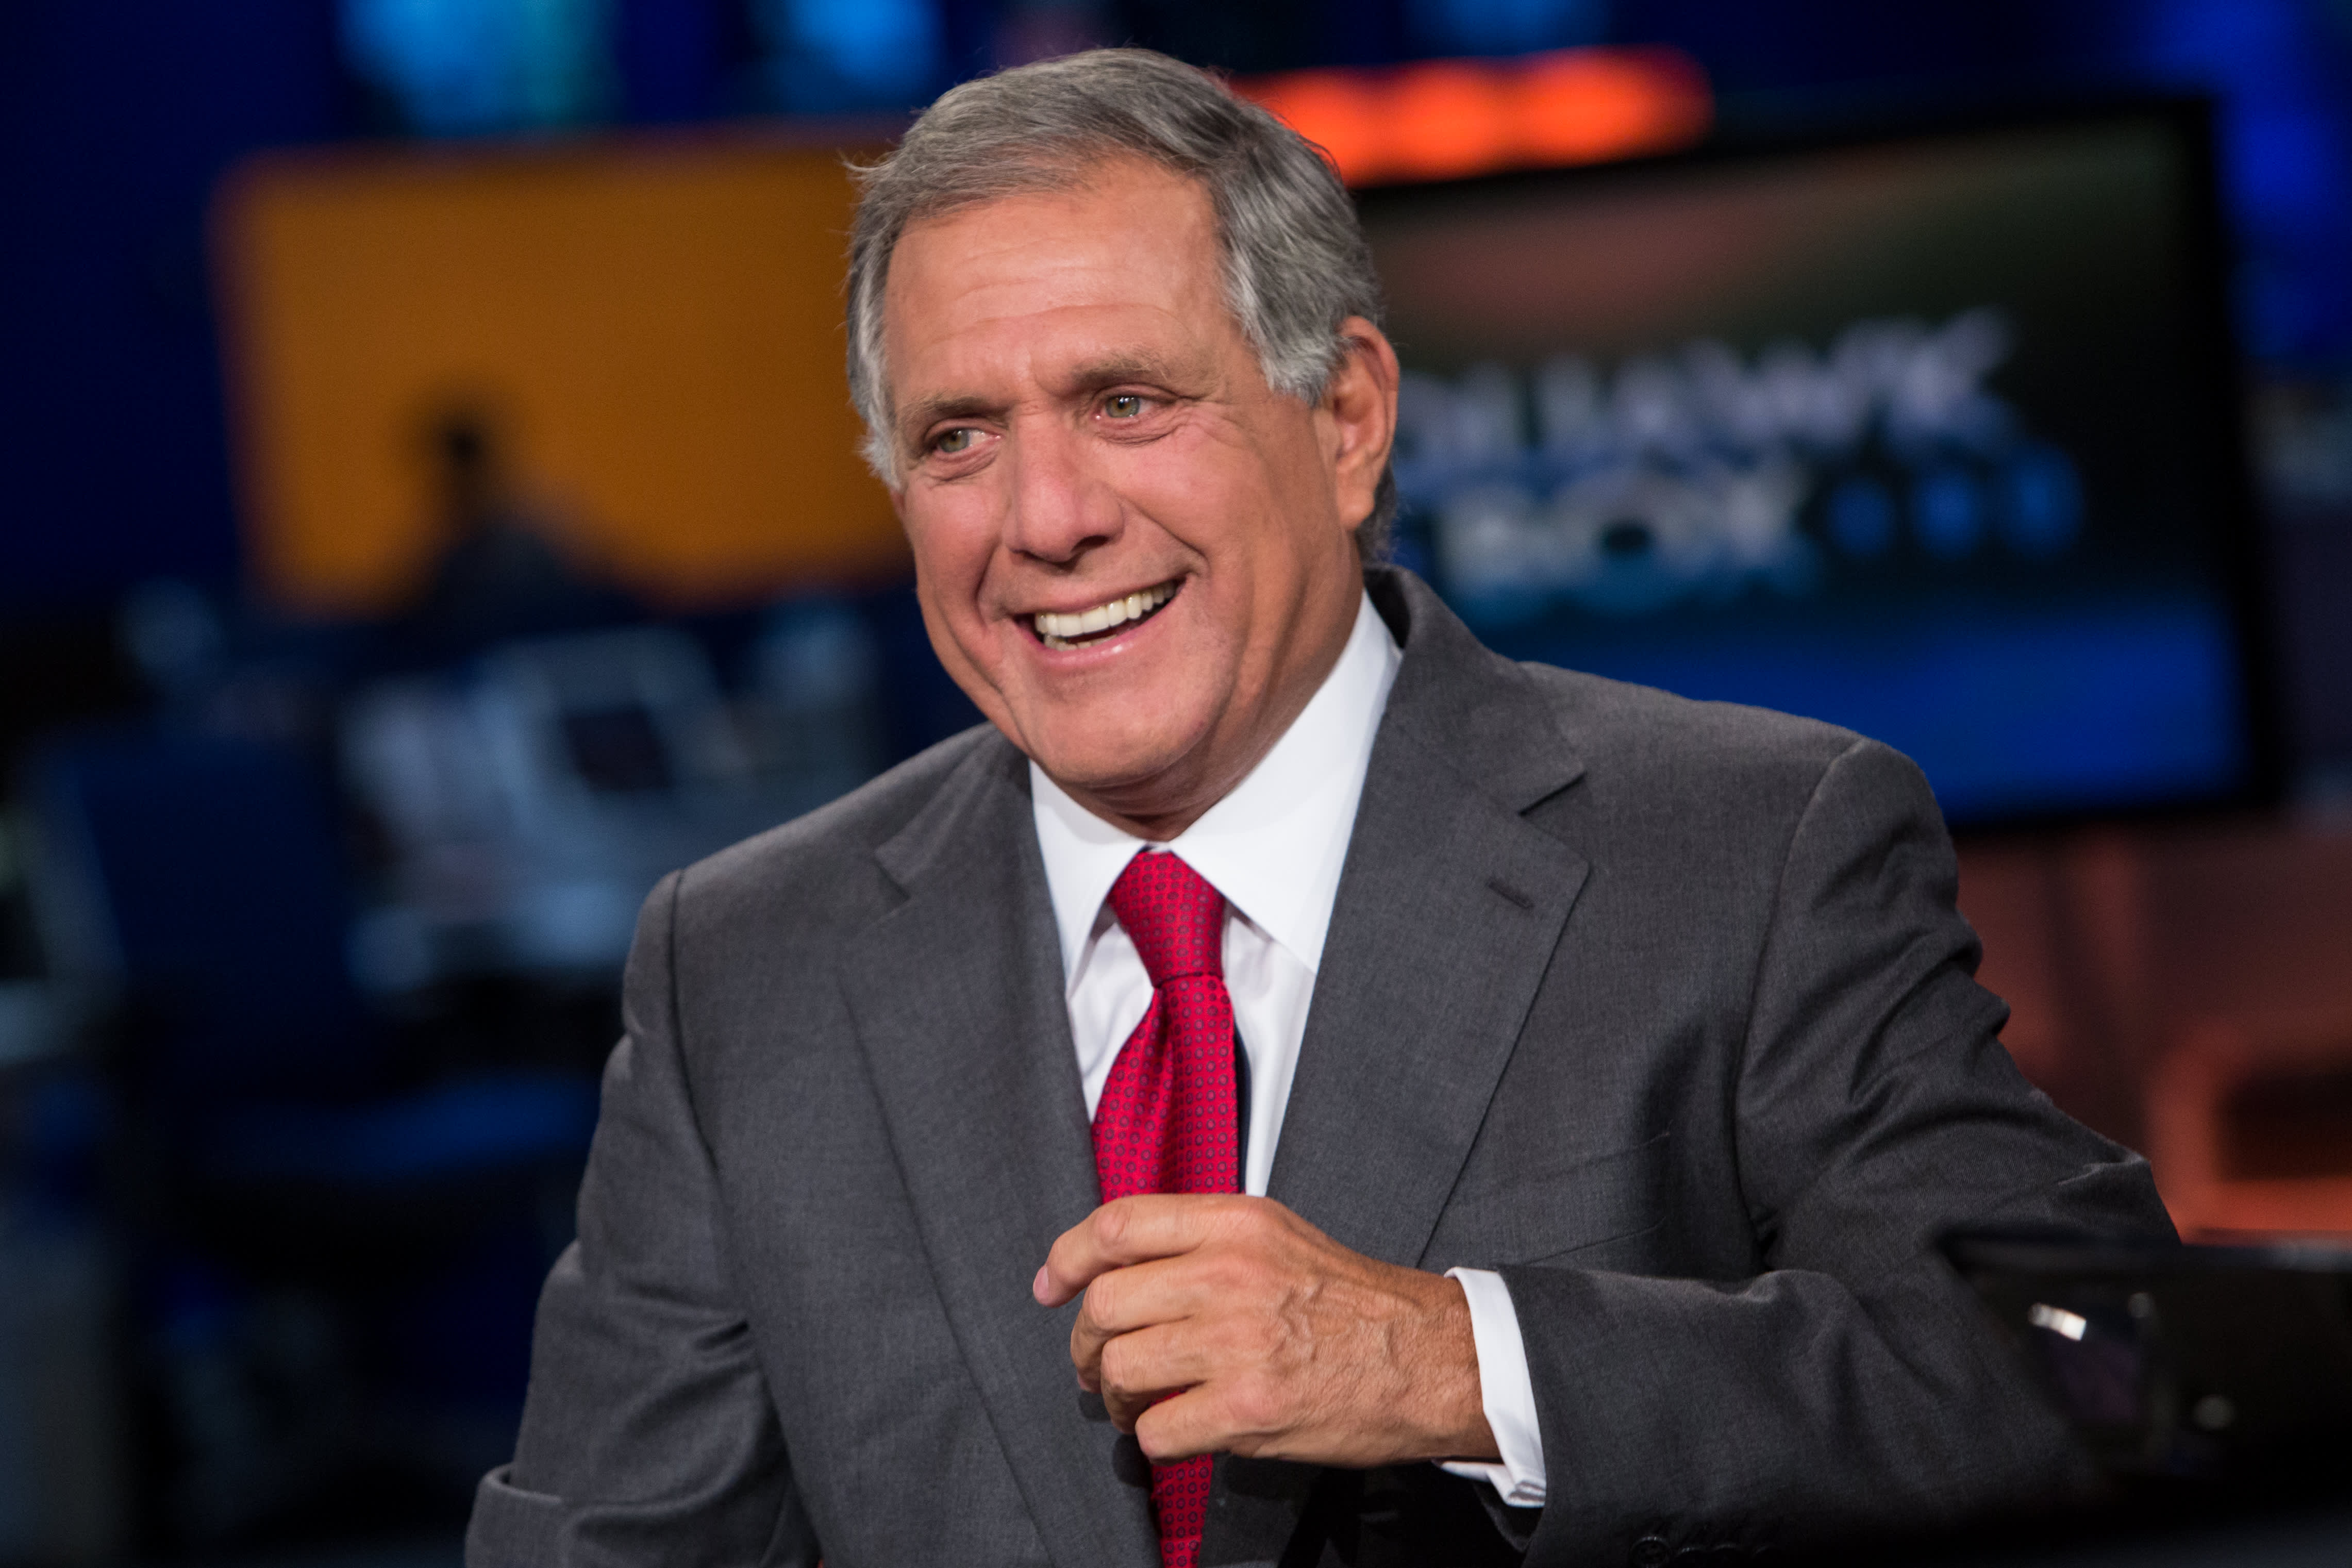 foto CBS stock price sinking on Les Moonves report about sexual misconduct